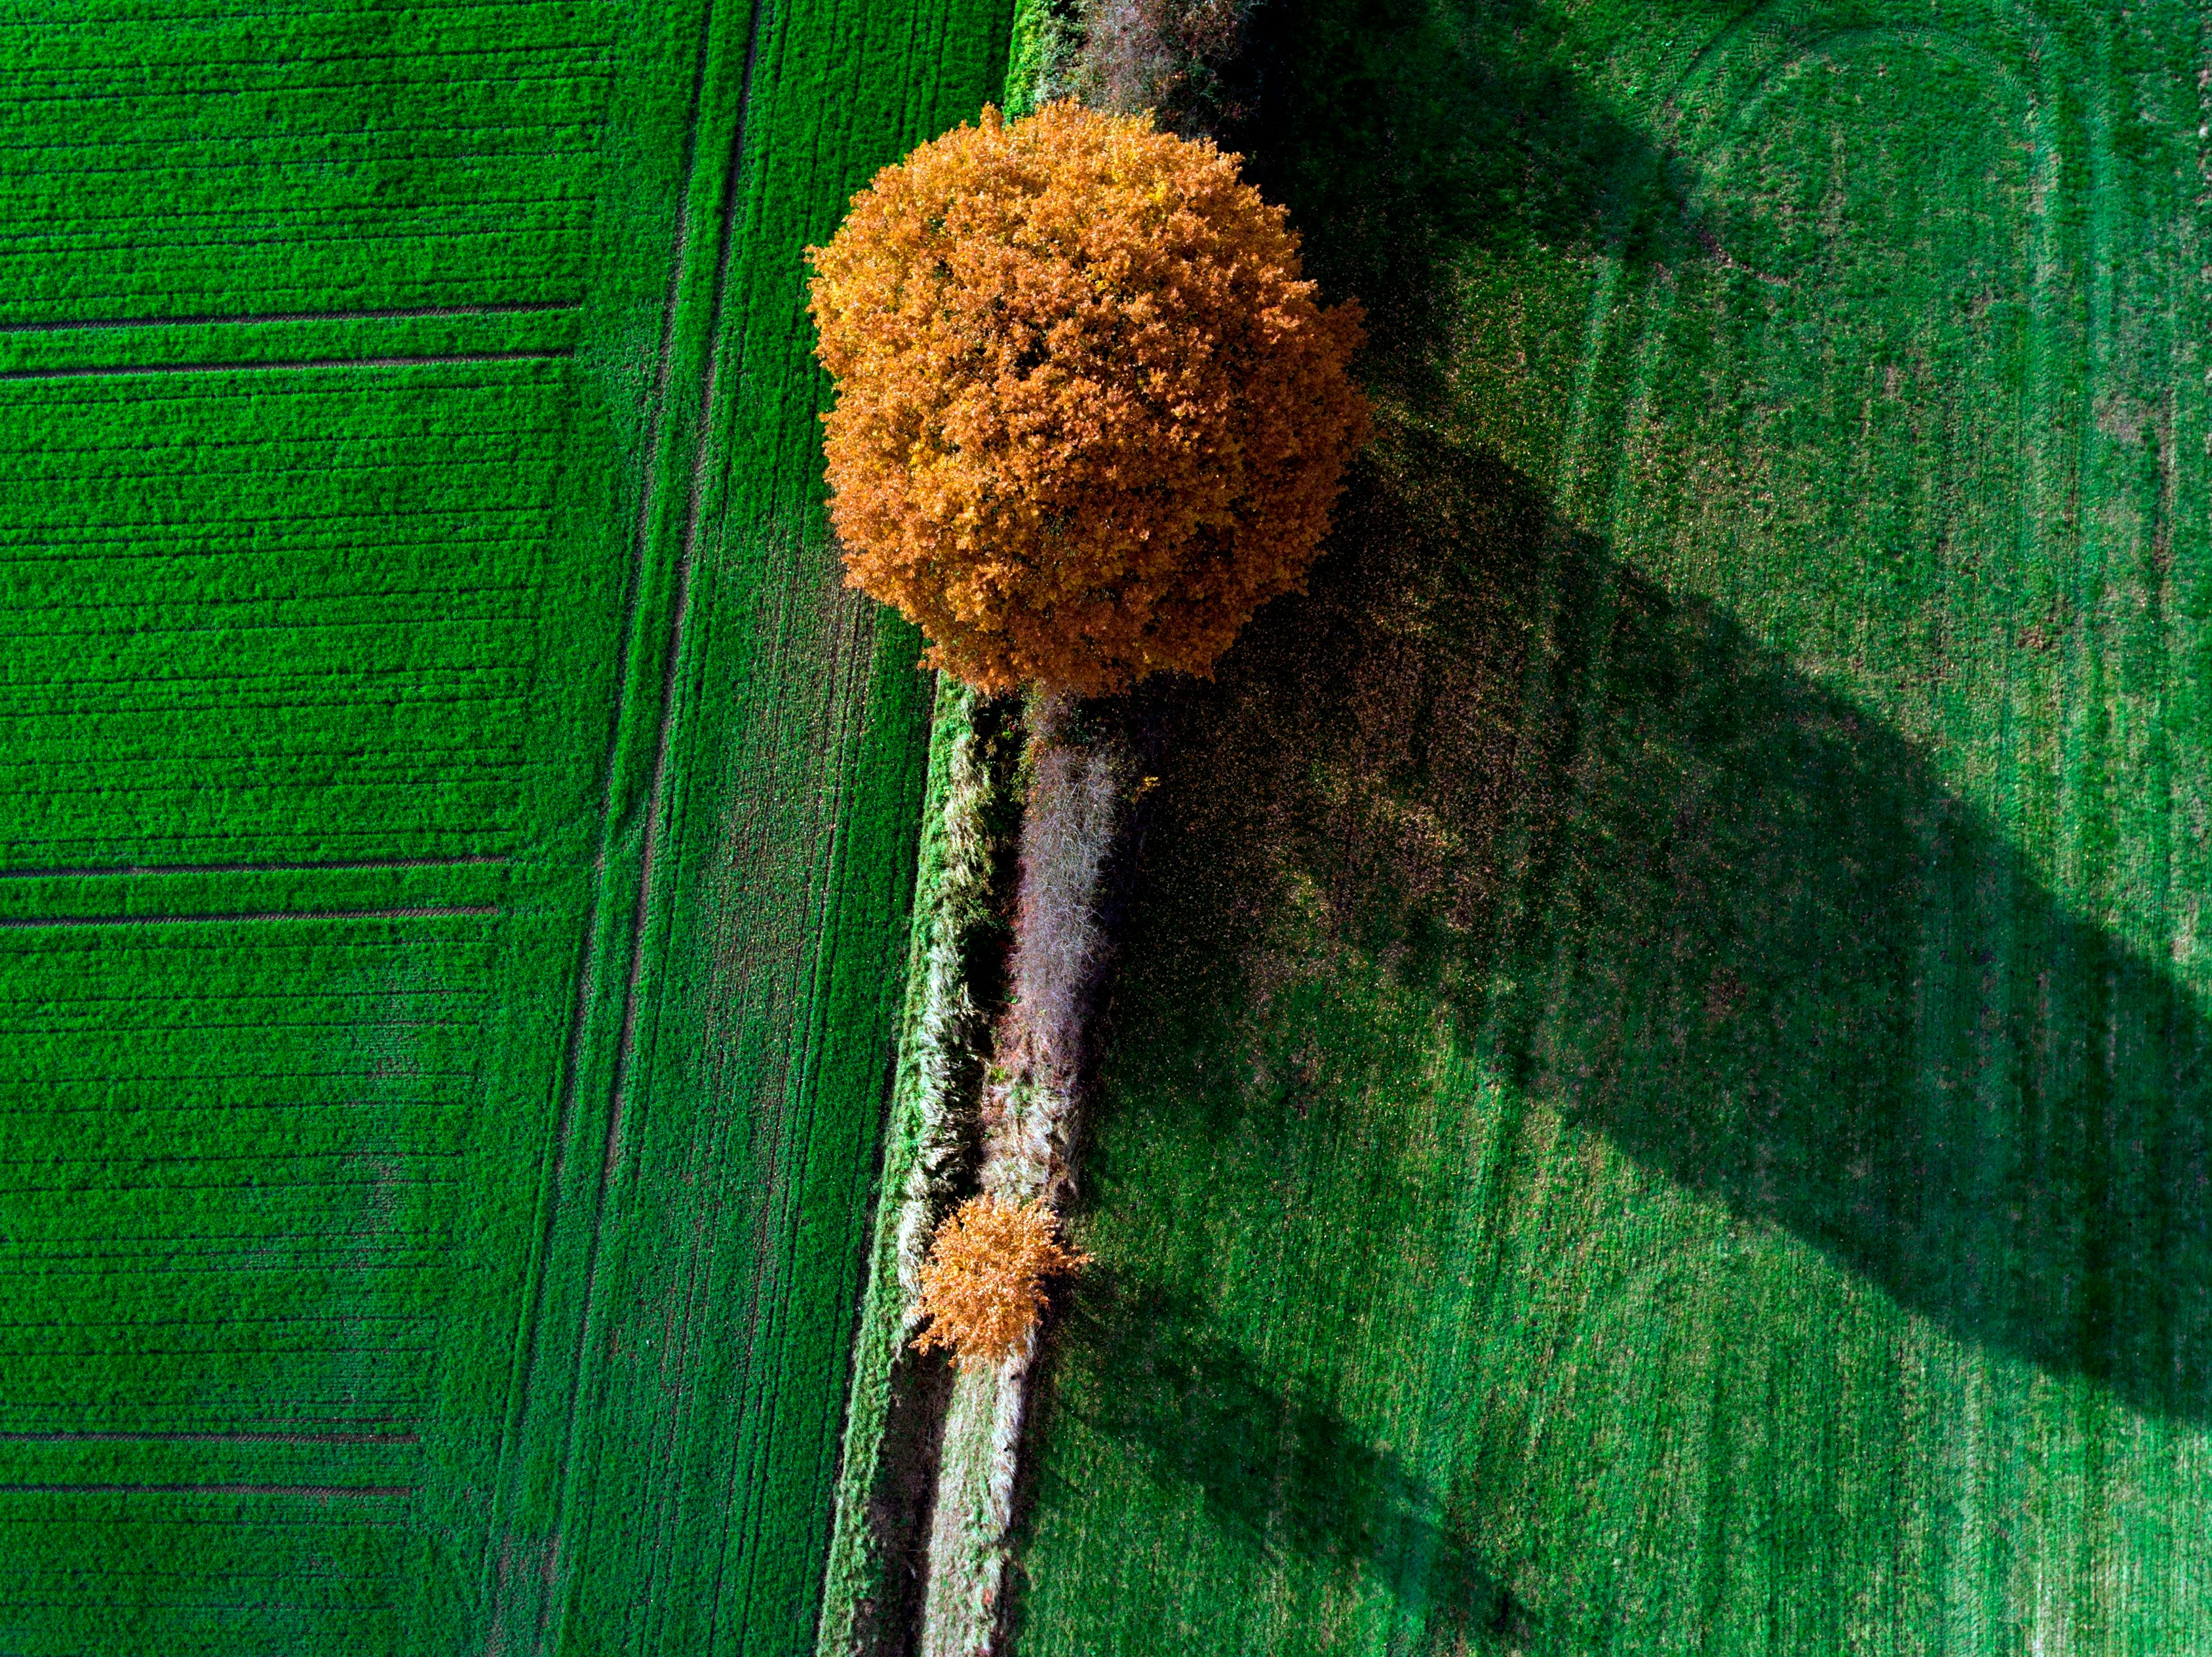 An aerial picture taken on November 13, 2018, in Vinnum, Germany, shows trees with automn colors in fields.